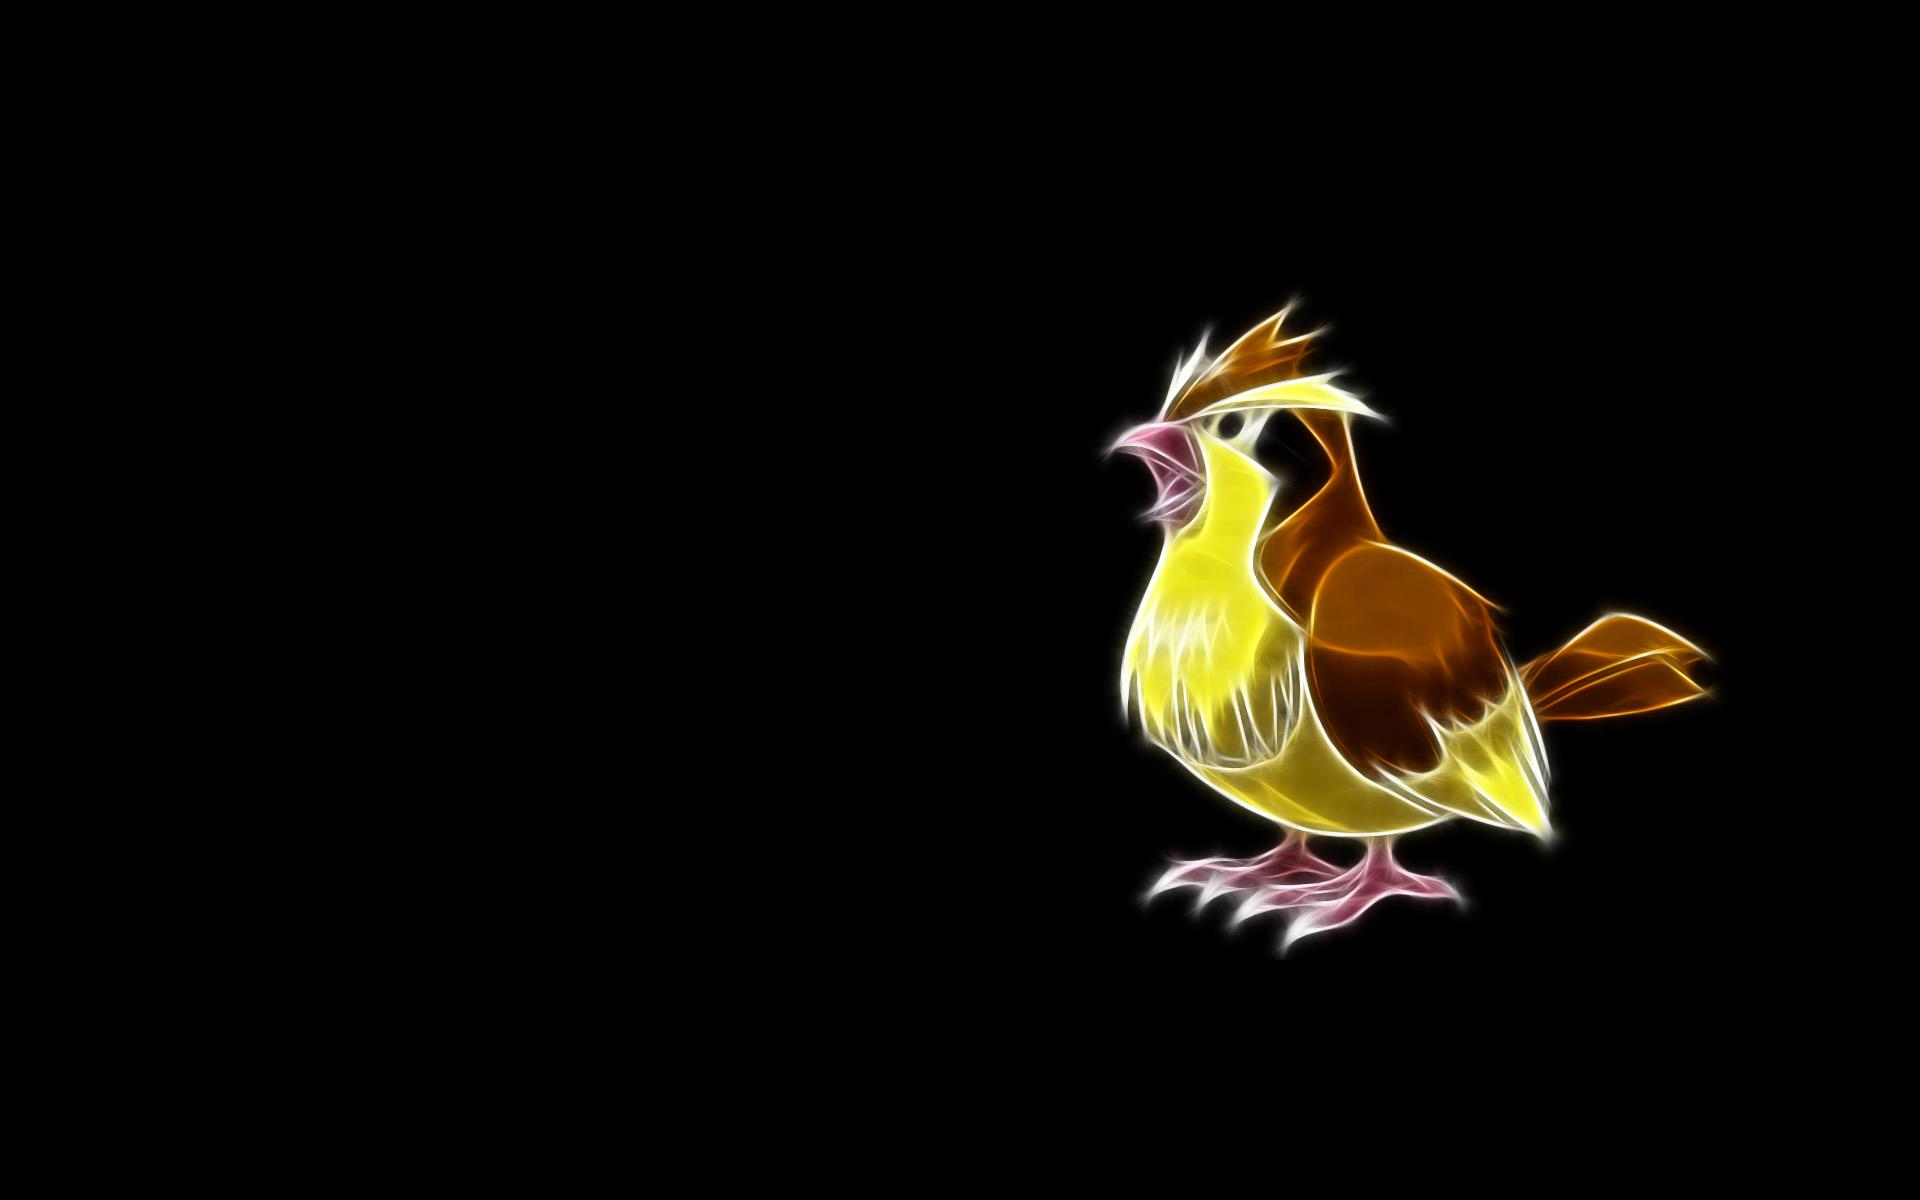 pidgey-pokemon-wallpaper-free-download